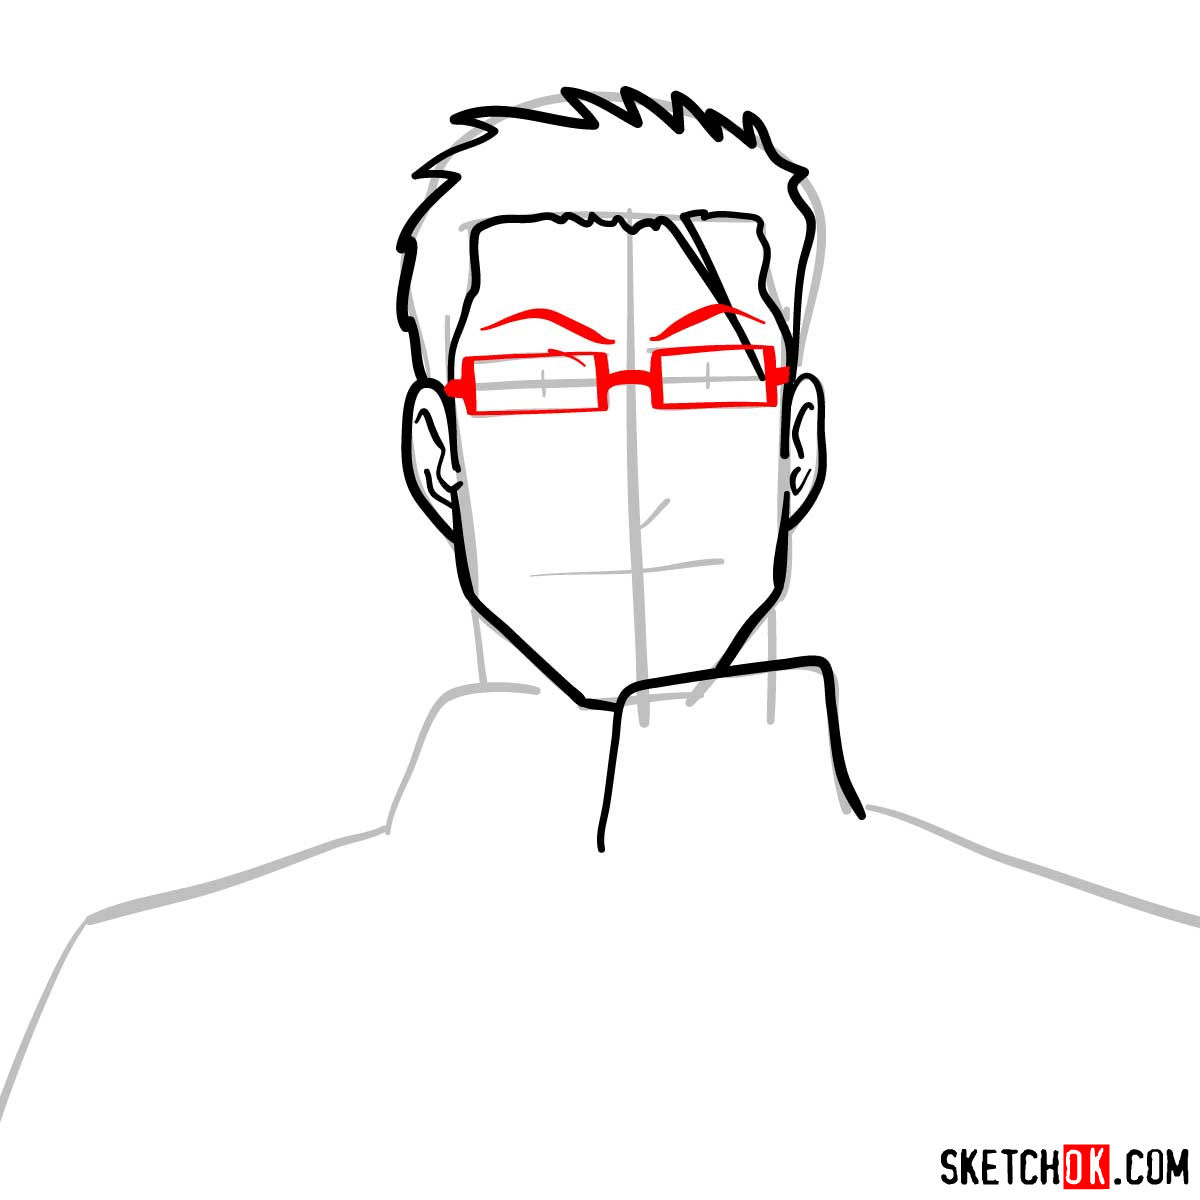 How to draw Maes Hughes from Fullmetal Alchemist anime - step 06